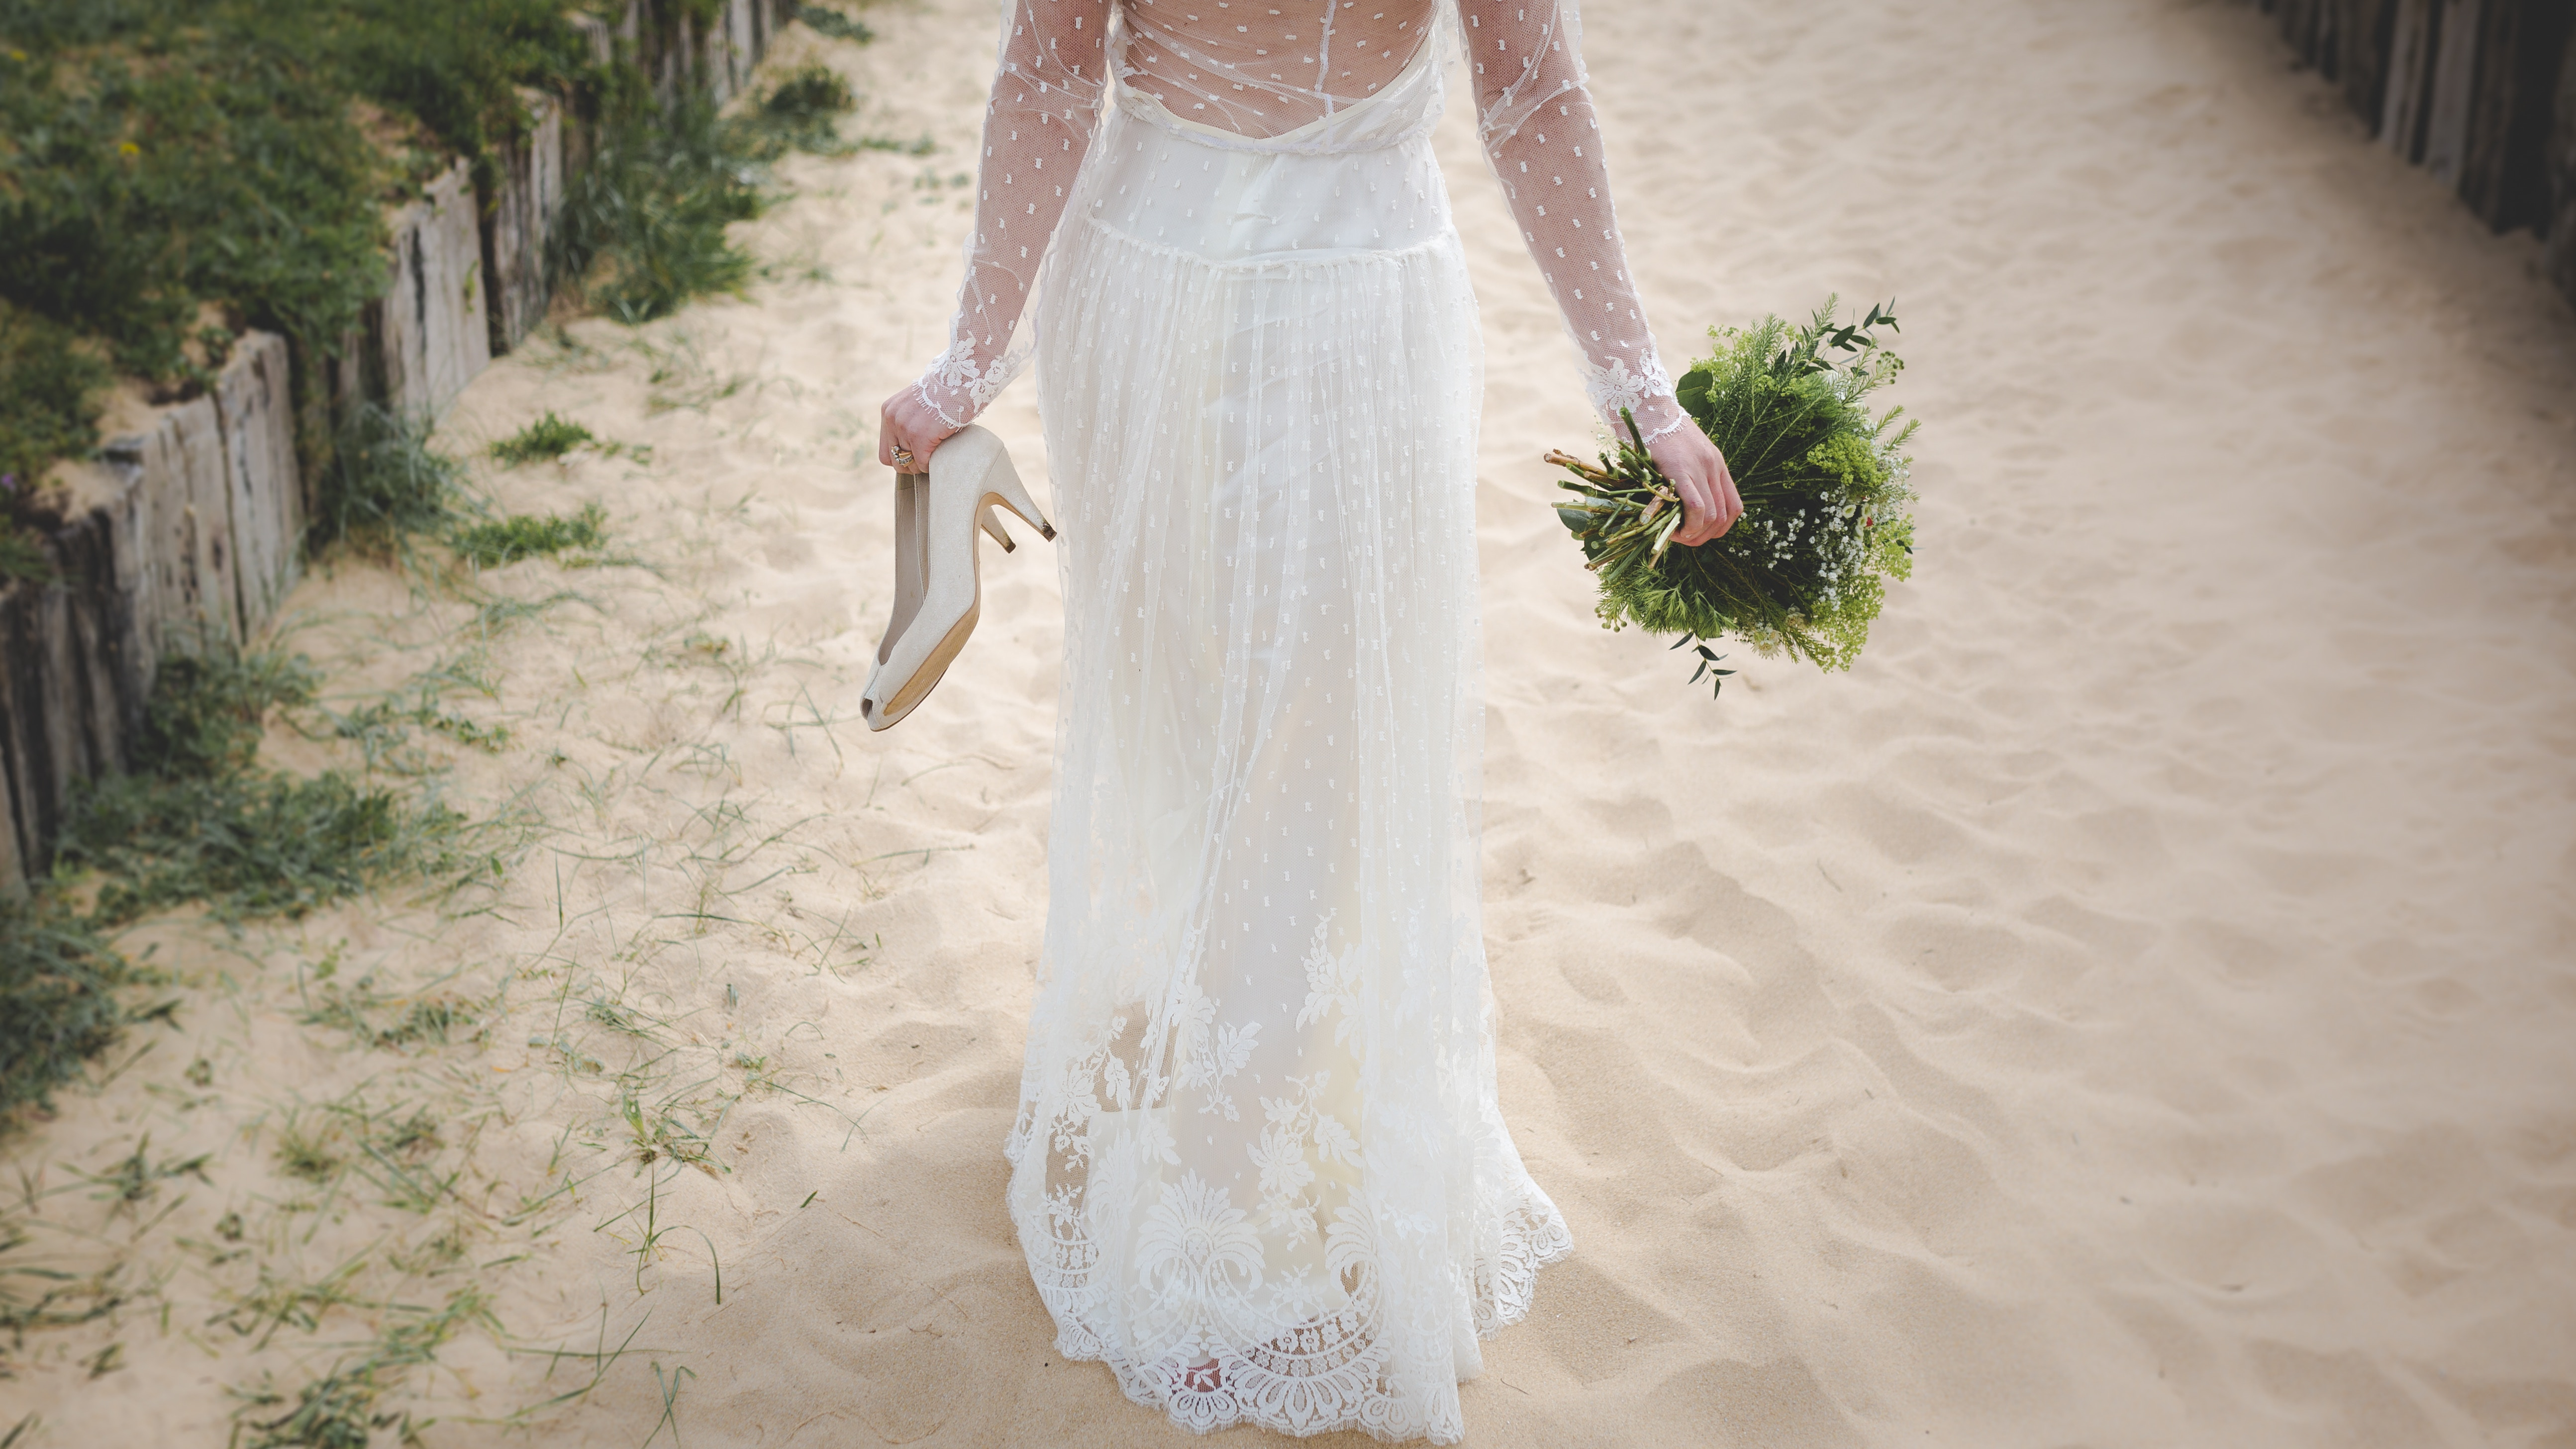 Wedding Day Prep: Everything a bride needs to know about waxing